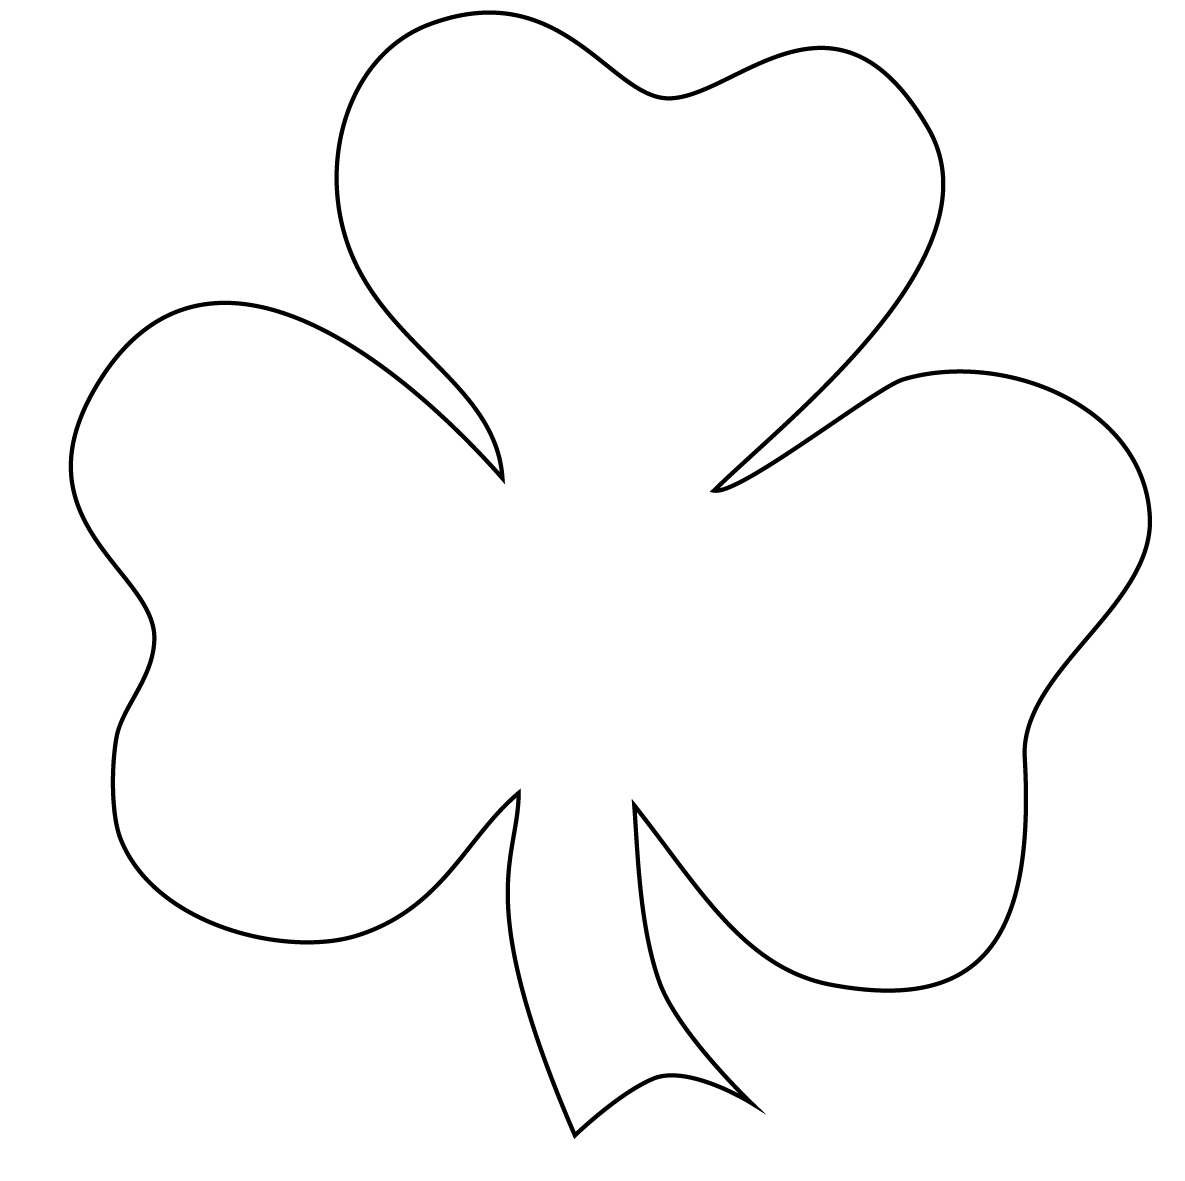 Black and white clipart of a shamrock svg black and white download Free Shamrock Clip Art Black And White | Clipart Panda - Free ... svg black and white download